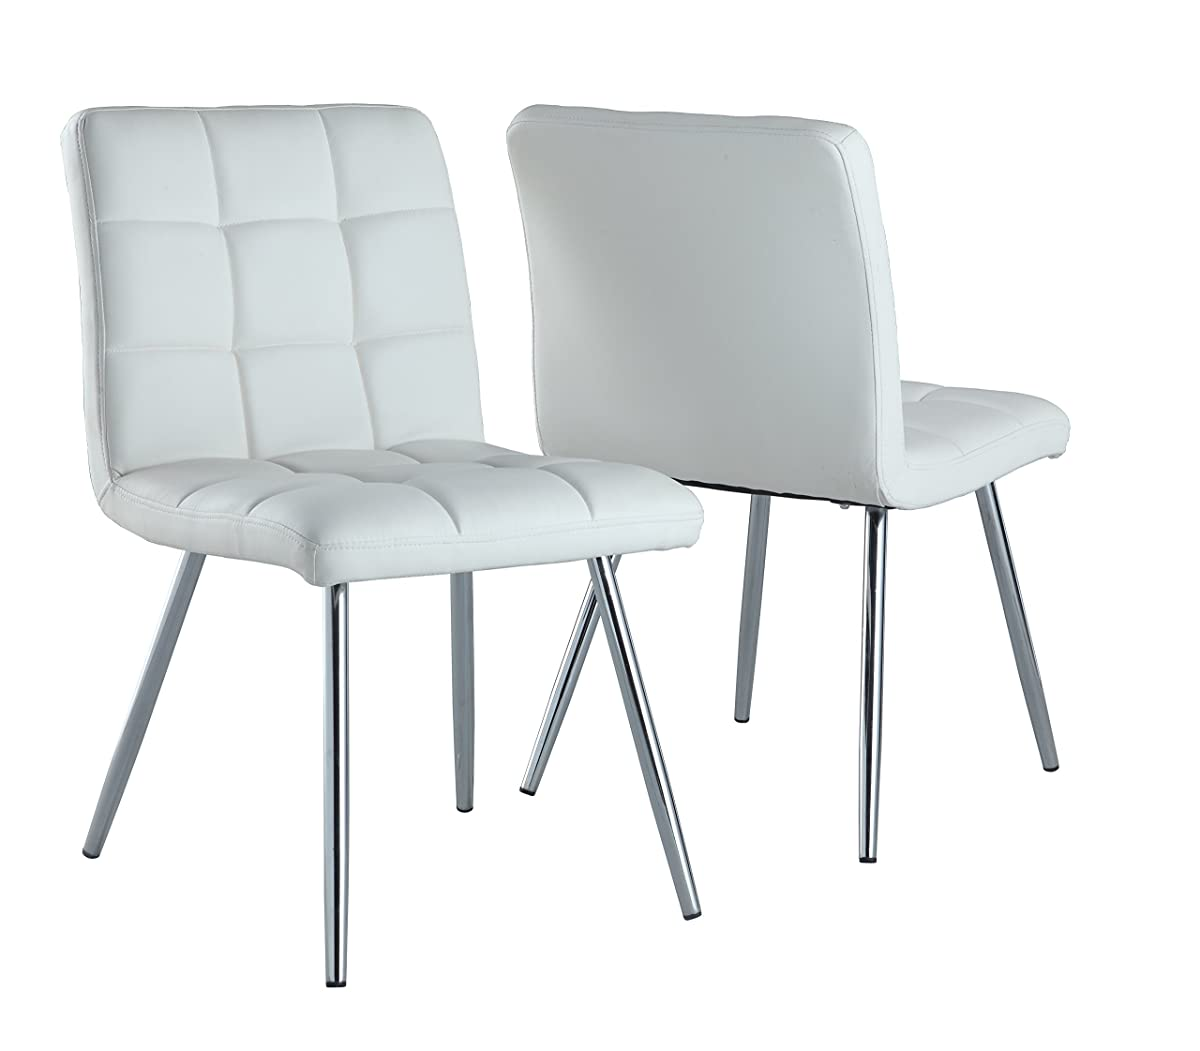 Monarch Specialties White Leather-Look/Chrome Metal 2-Piece Dining Chair, 32-Inch